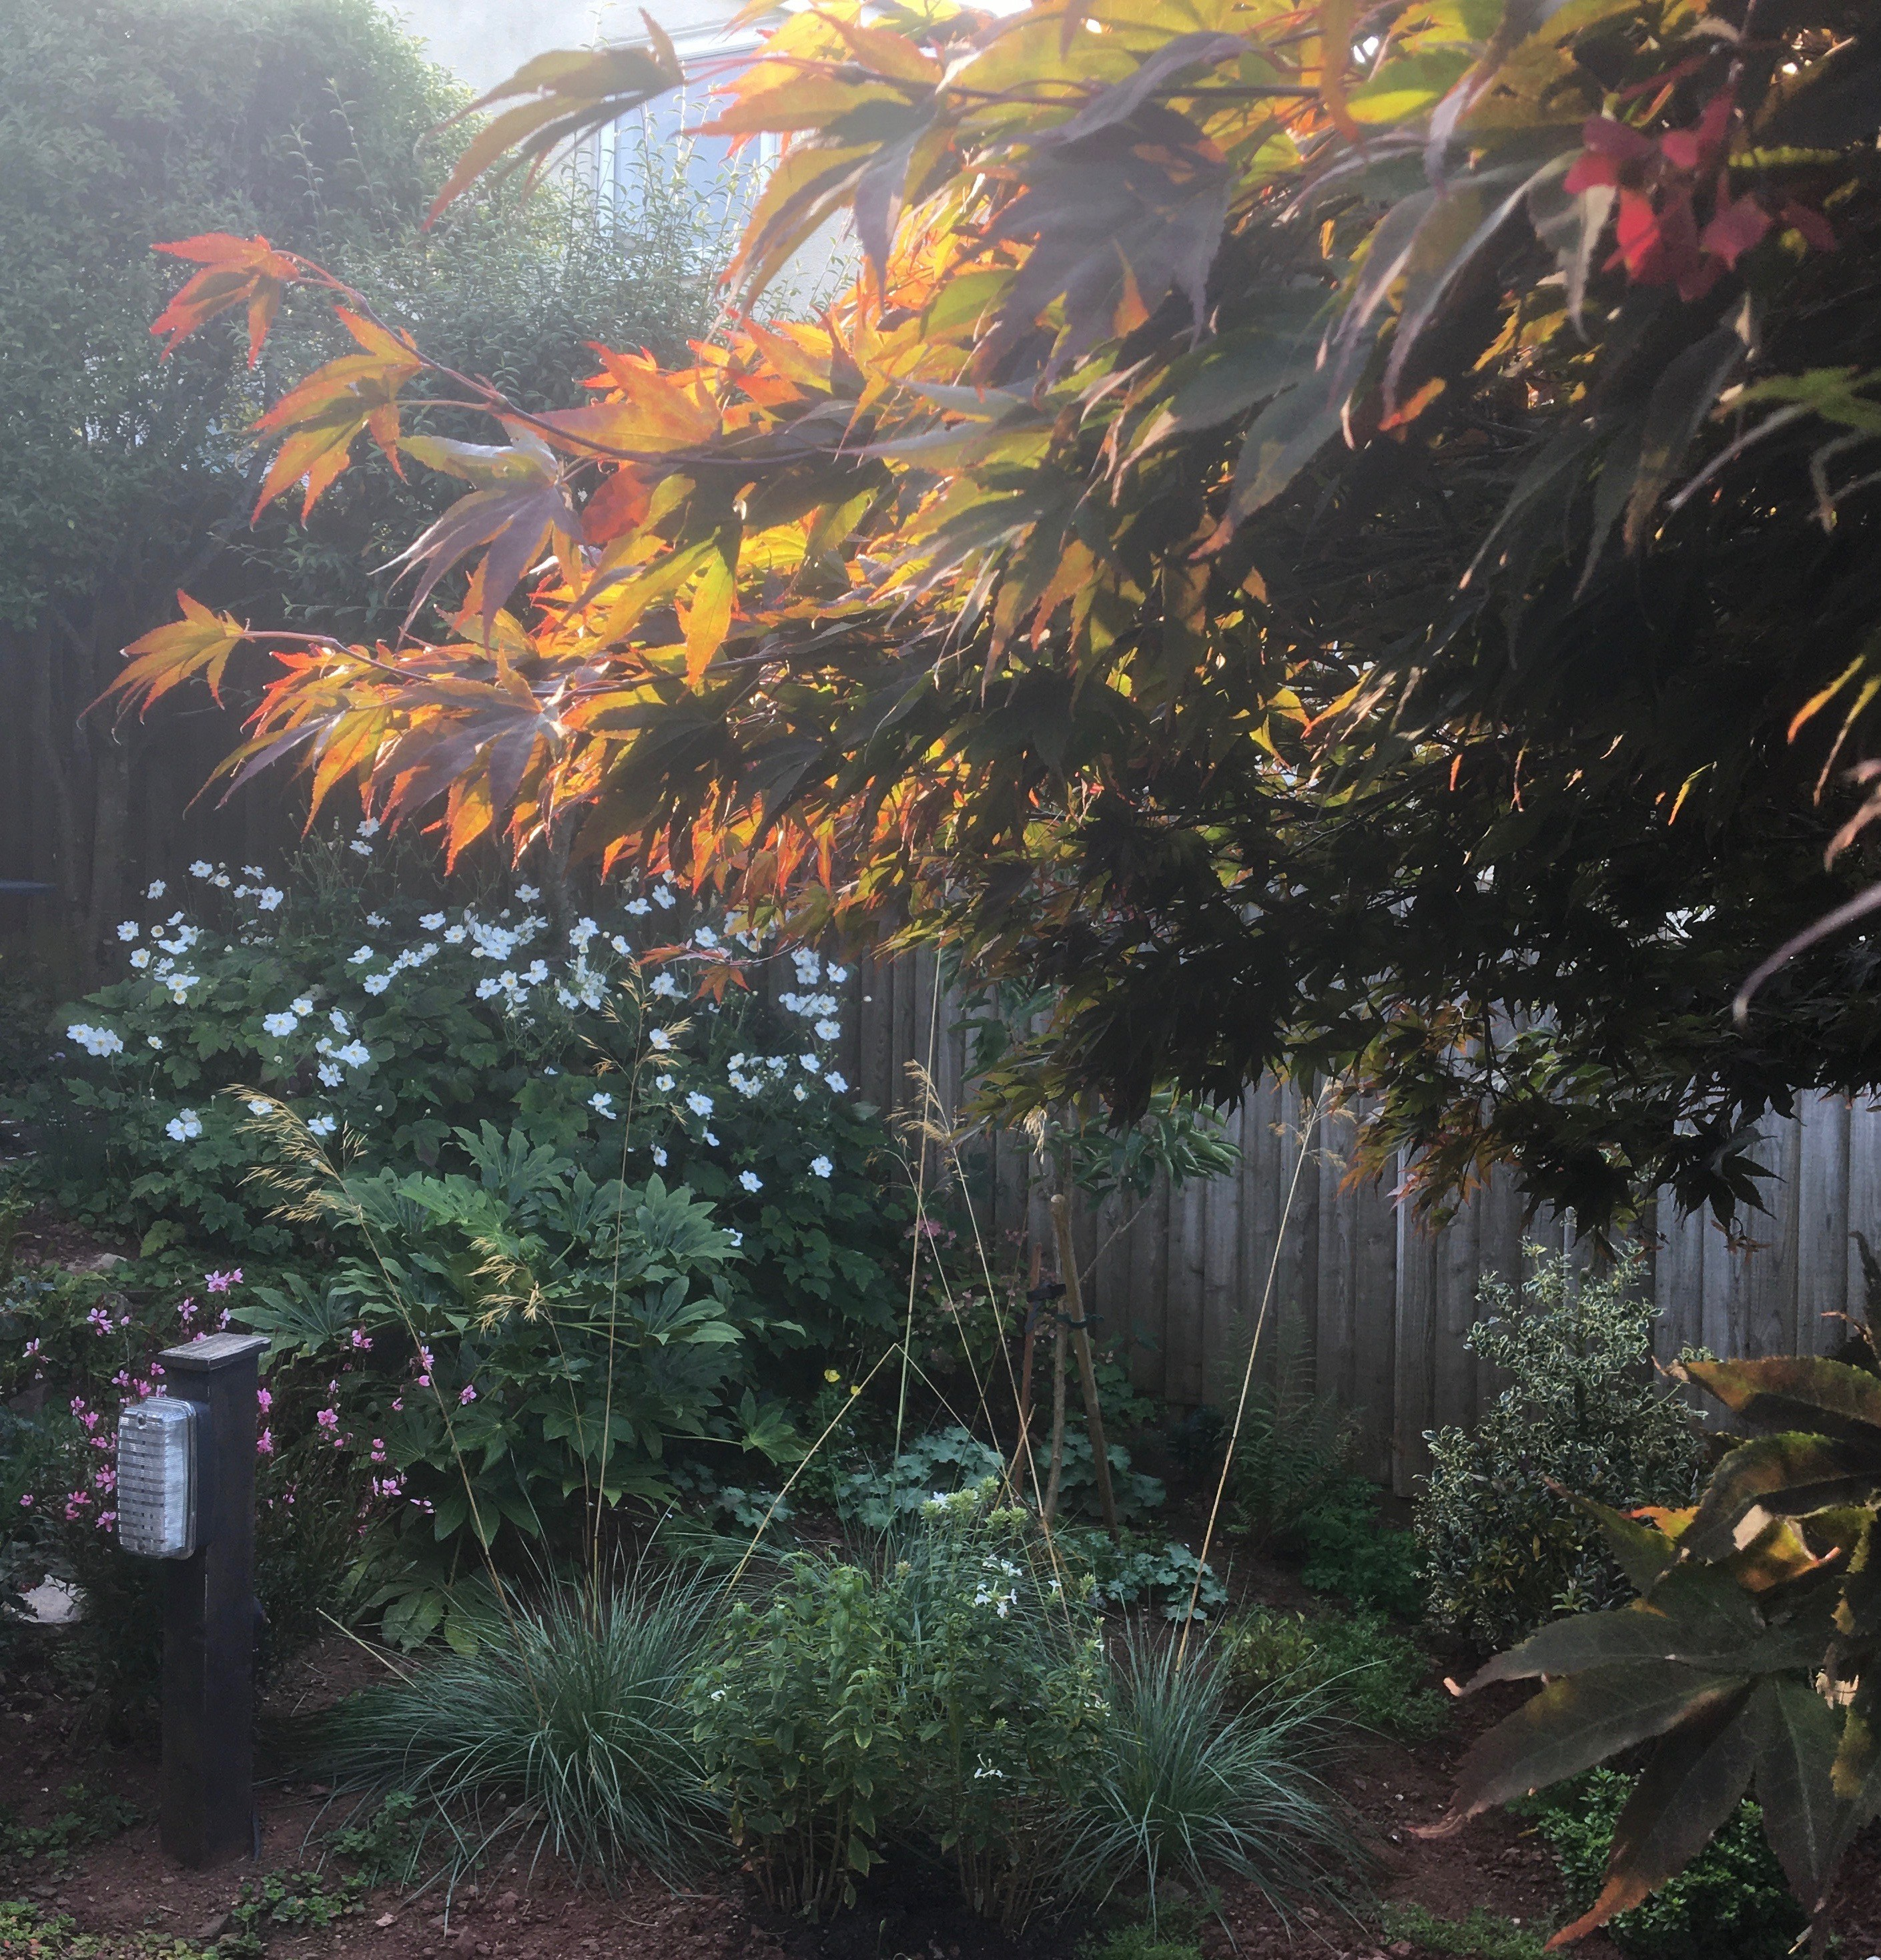 Acer tree with filtered sunlight. Gardening for better health and wellbeing